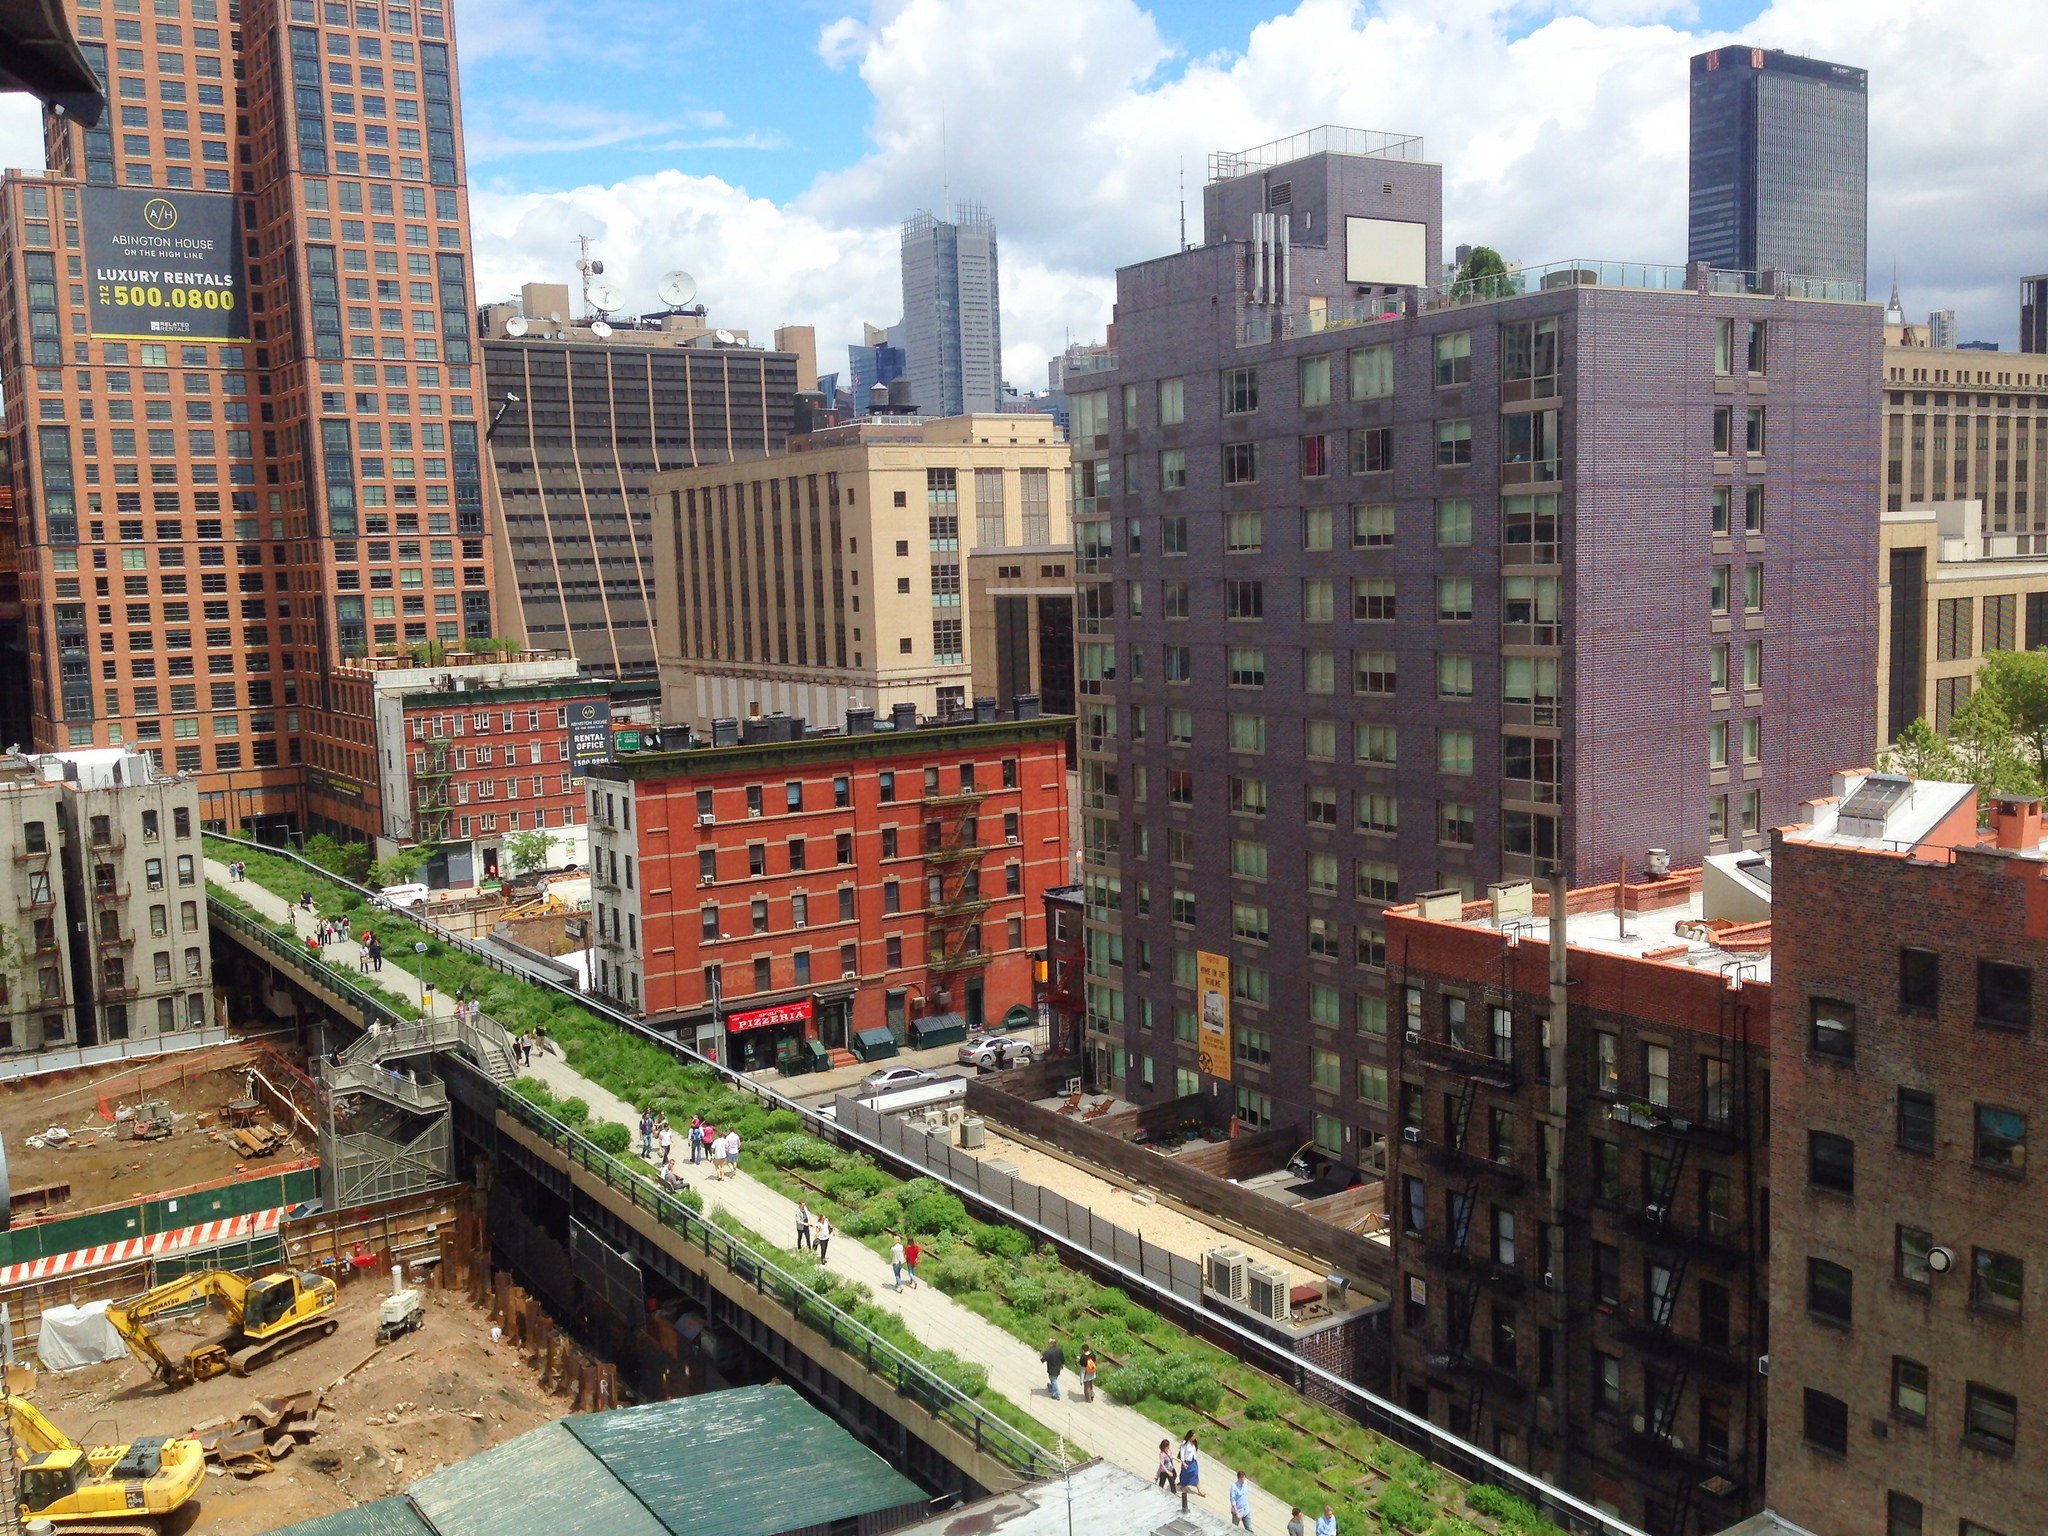 The High Line, stock image